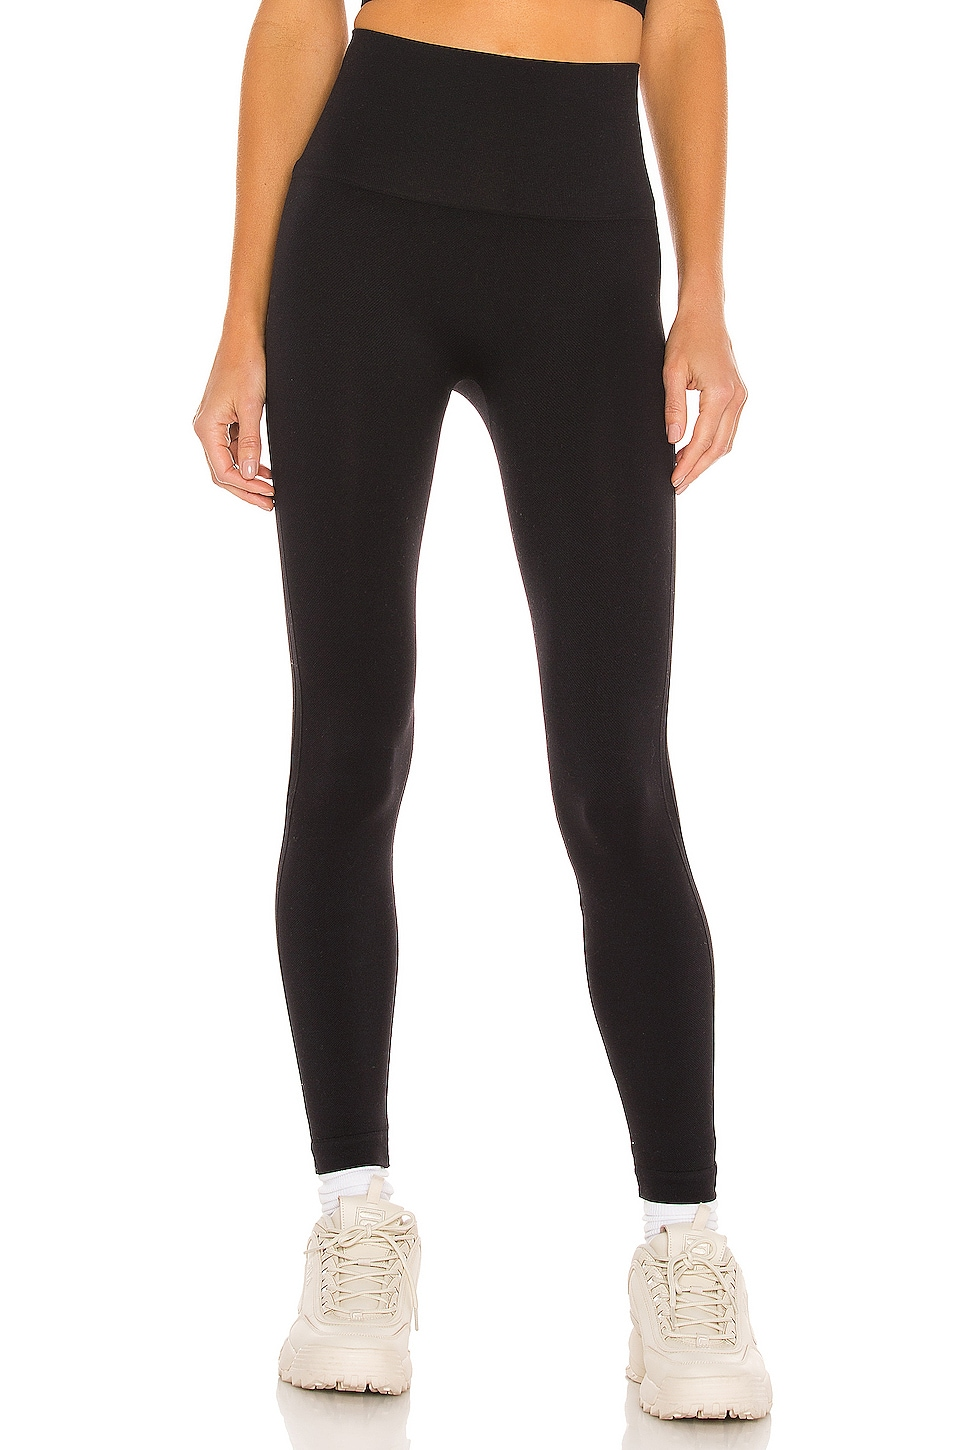 Look At Me Now Legging             SPANX                                                                                                       CA$ 90.42 4